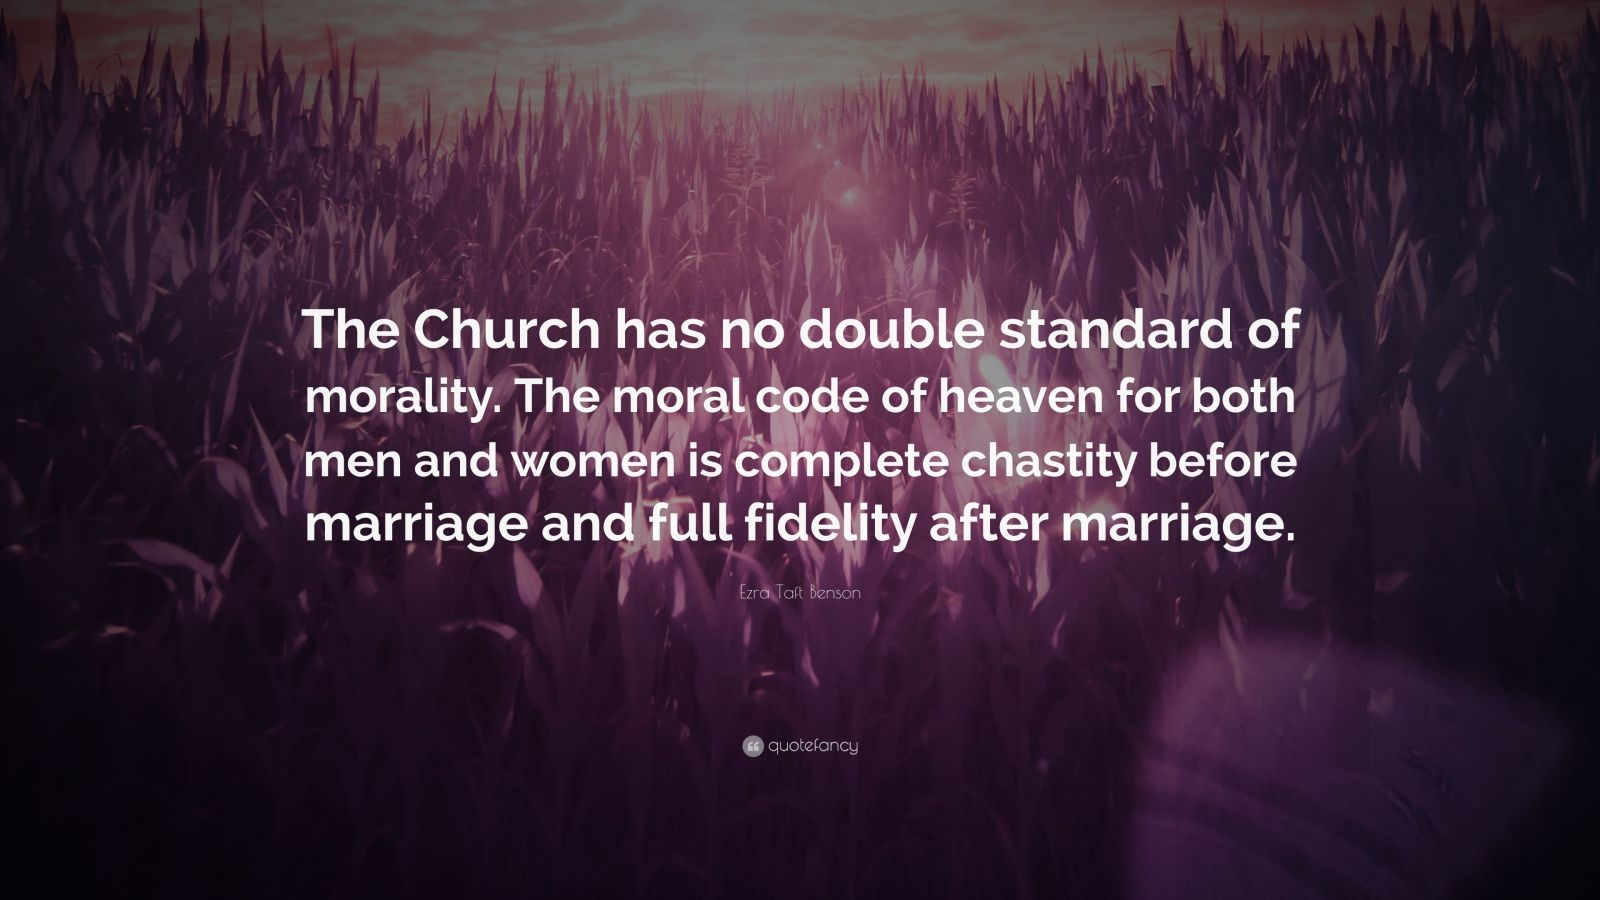 """Ezra Taft Benson Quote: """"The Church has no double standard of morality. The moral code of heaven for both men and women is complete chastity before marriage and full fidelity after marriage."""""""